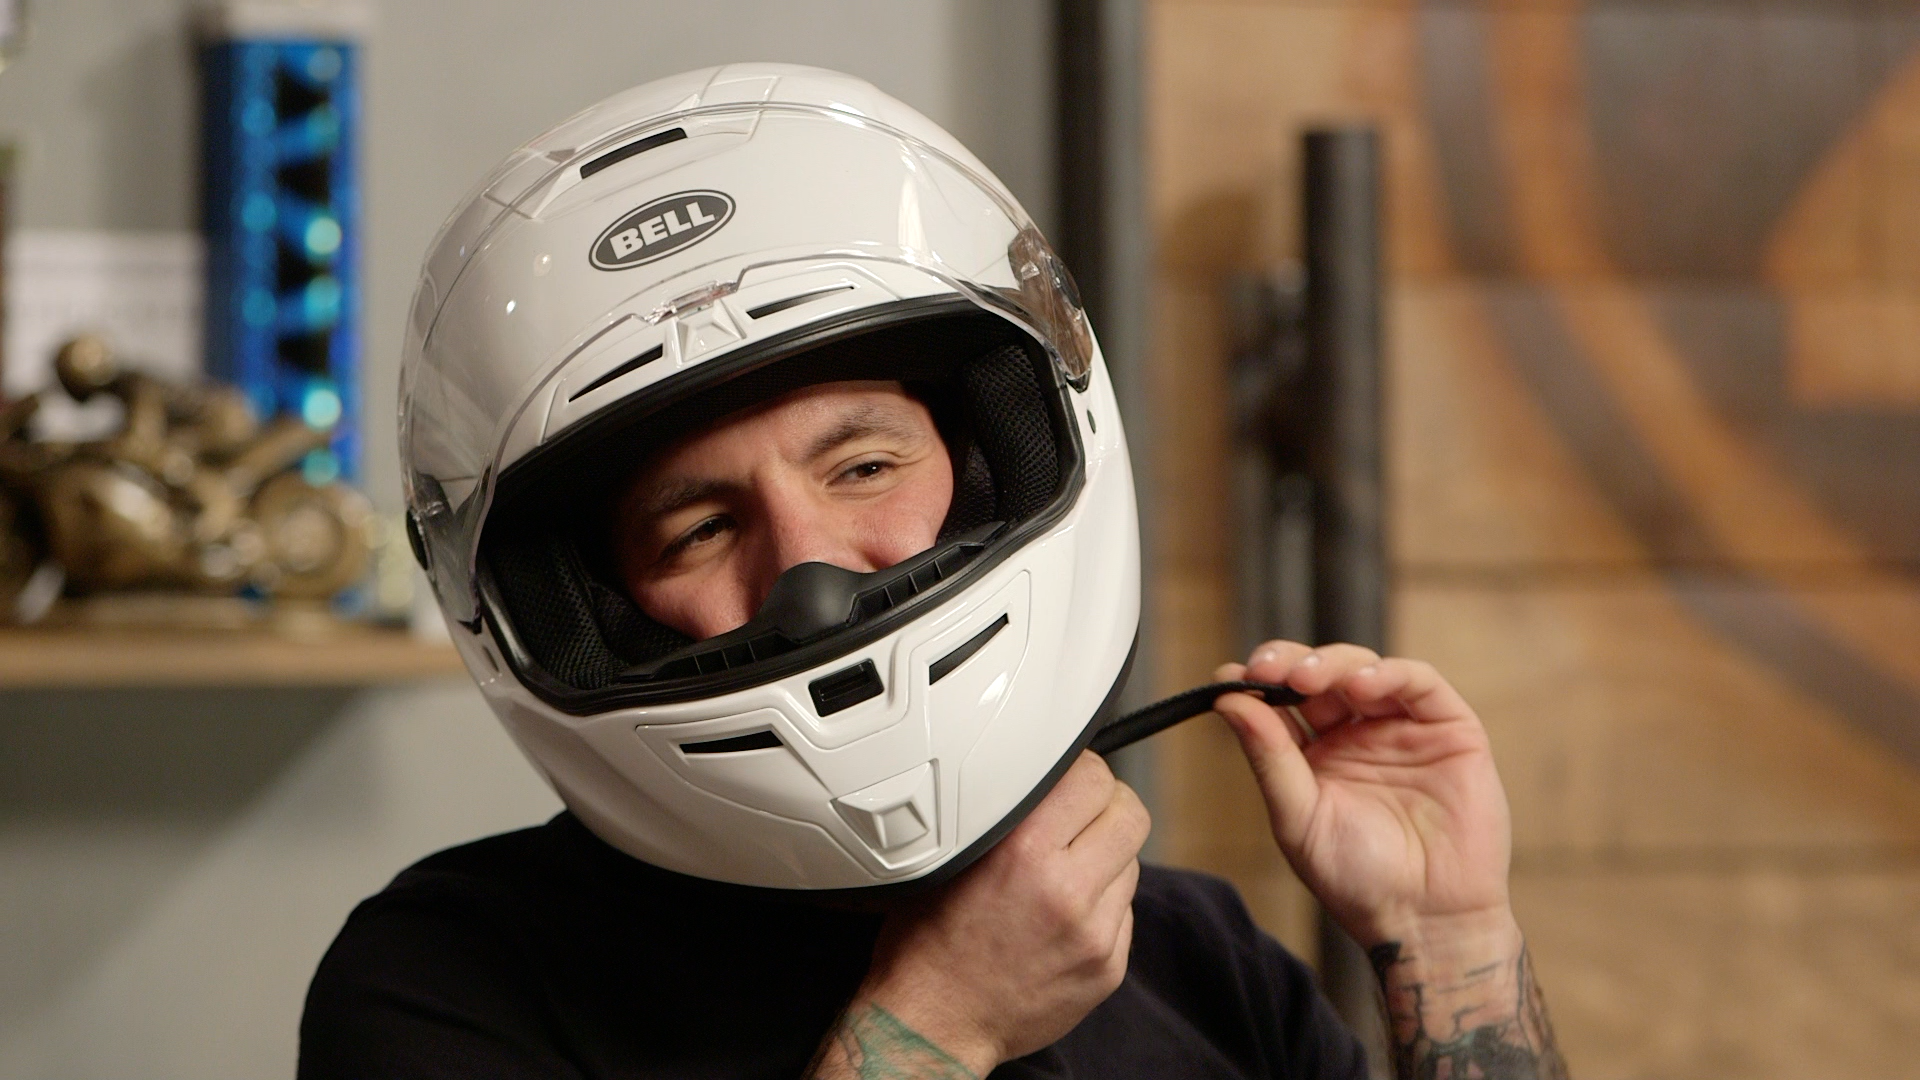 Buy Motorcycle Helmet >> How To Size And Buy A Motorcycle Helmet Revzilla